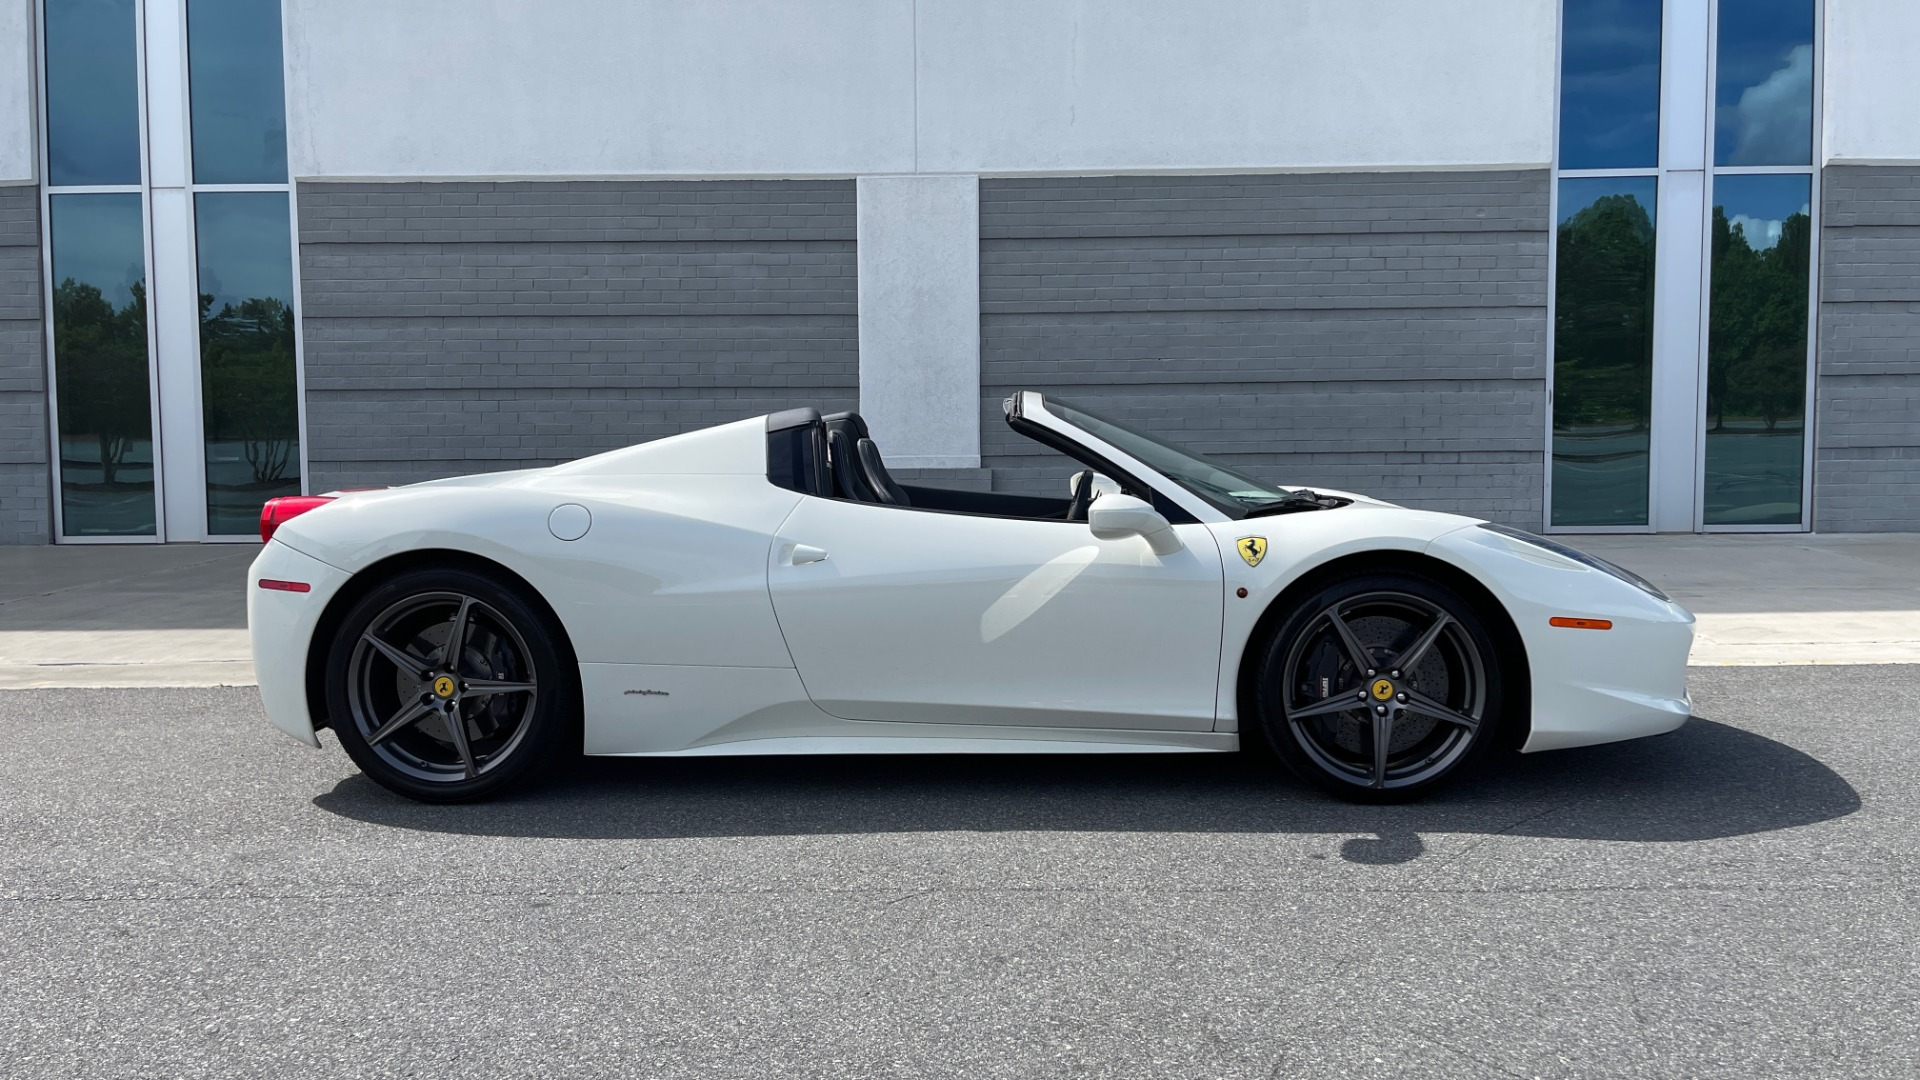 Used 2014 Ferrari 458 ITALIA SPIDER 570HP / F1 AUTO / CF SEATS / CARBON BRAKES / REARVIEW for sale $249,999 at Formula Imports in Charlotte NC 28227 11